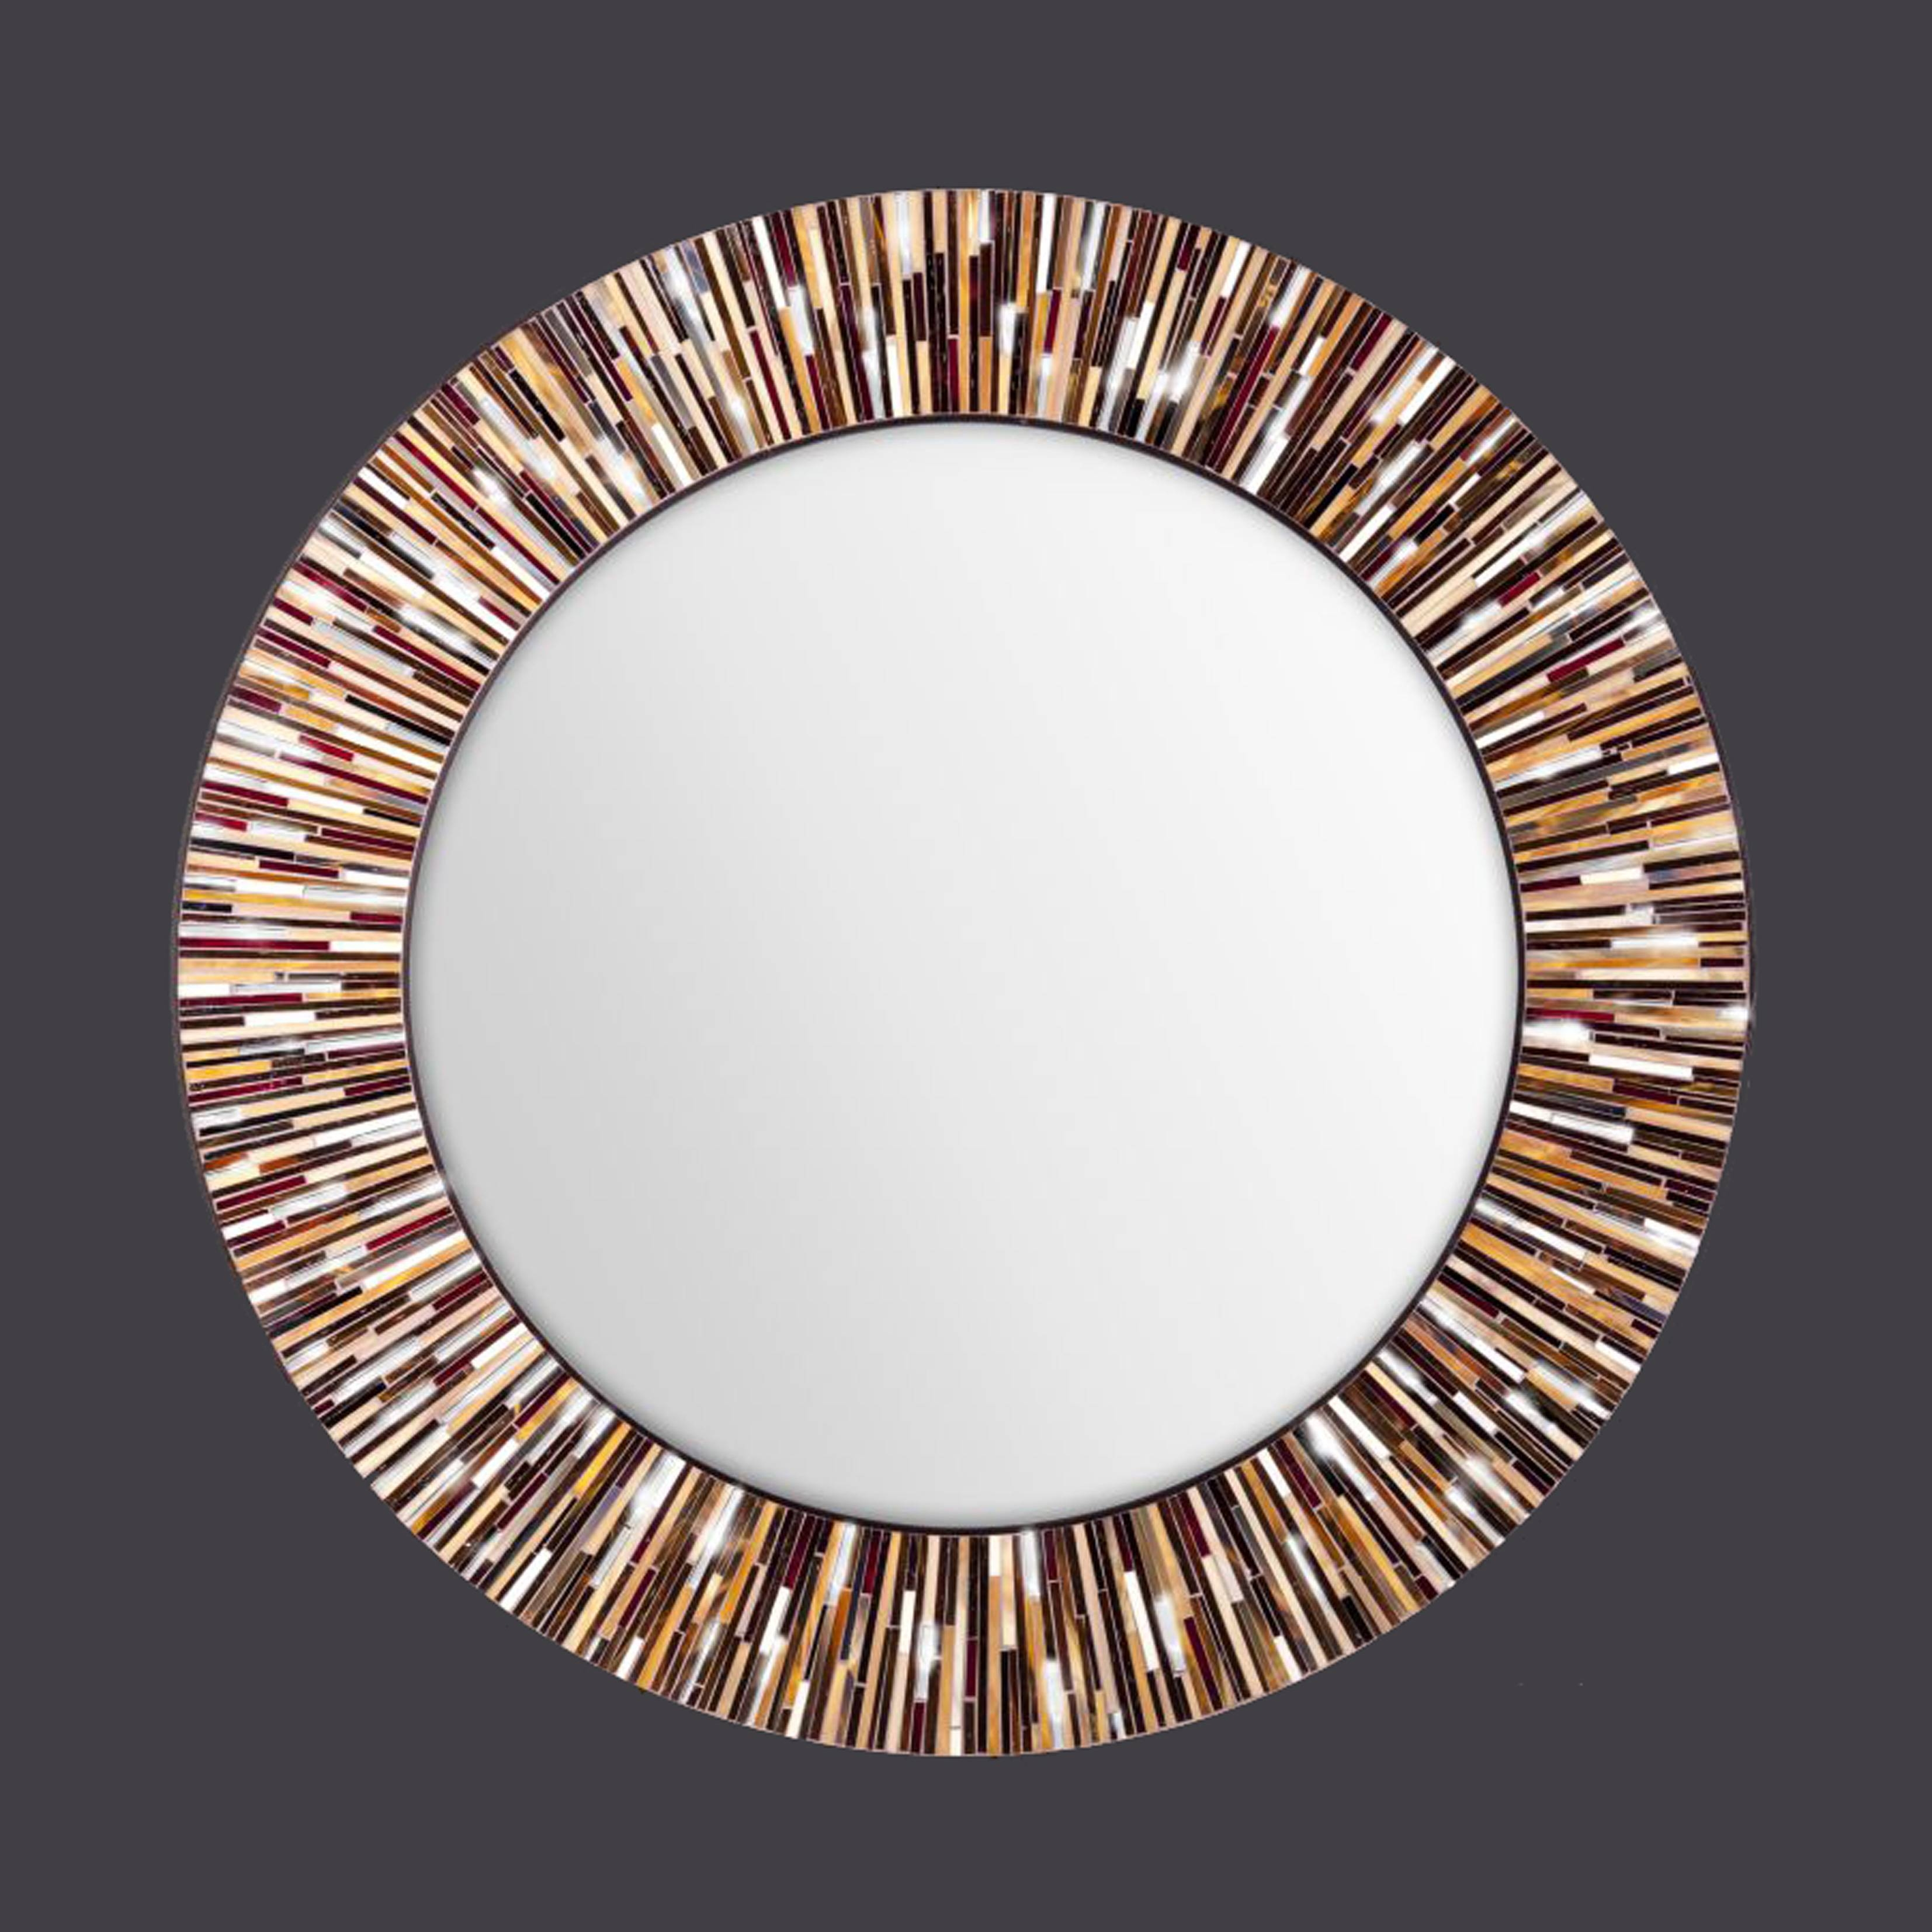 Mosaic Mirrors For Sale 109 Stunning Decor With All White Wall Inside Large Circle Mirrors (View 23 of 25)